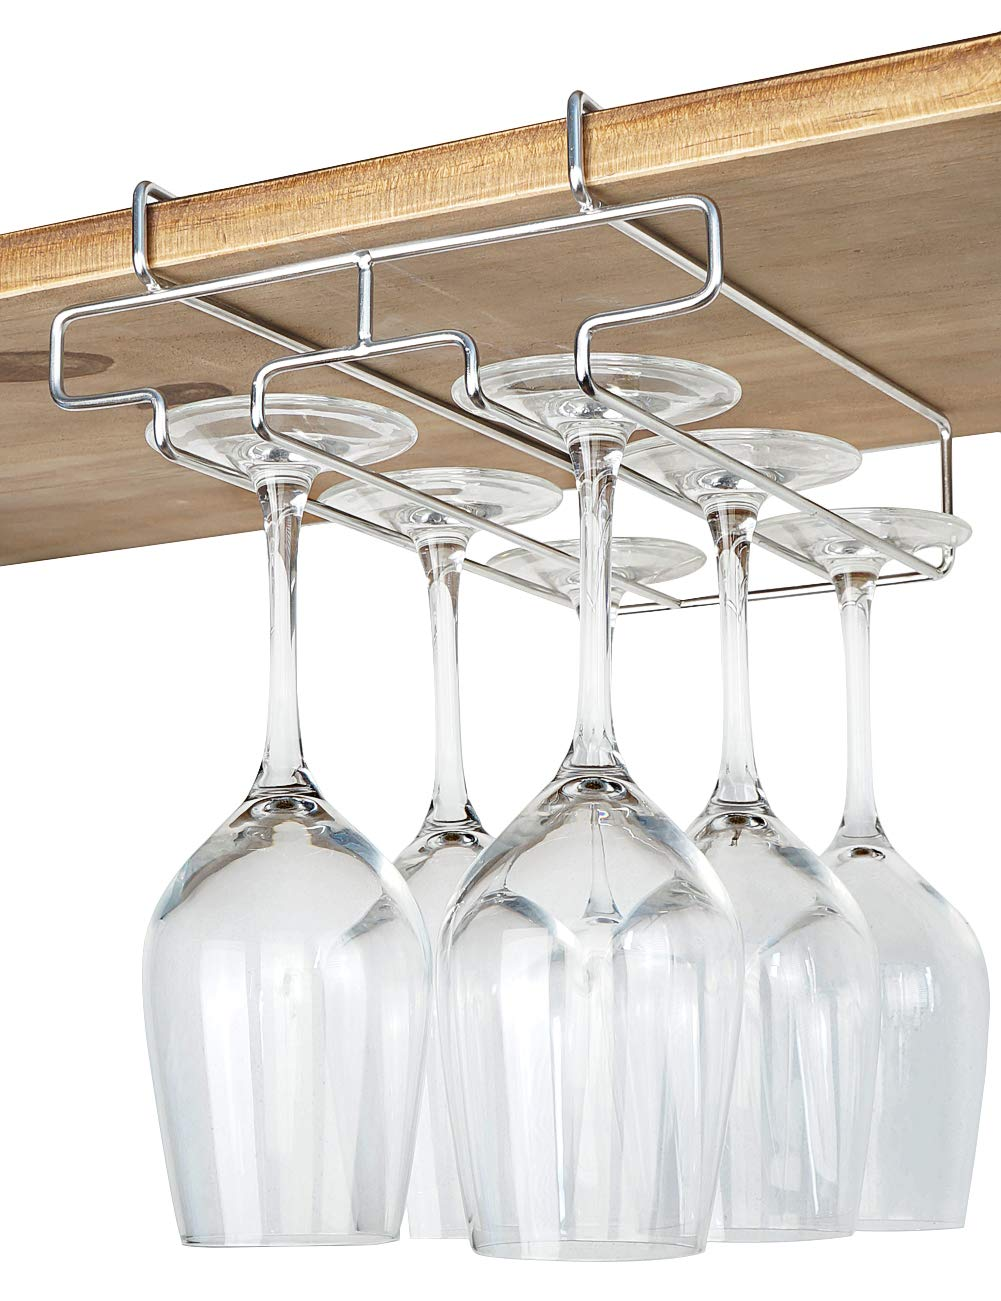 "Bafvt Wine Glass Holder - 2 Rows Wine Glass Rack Under Cabinet - 304 Stainless Steel Stemware Drying Rack, Fit for The Cabinet 0.8"" or Less"